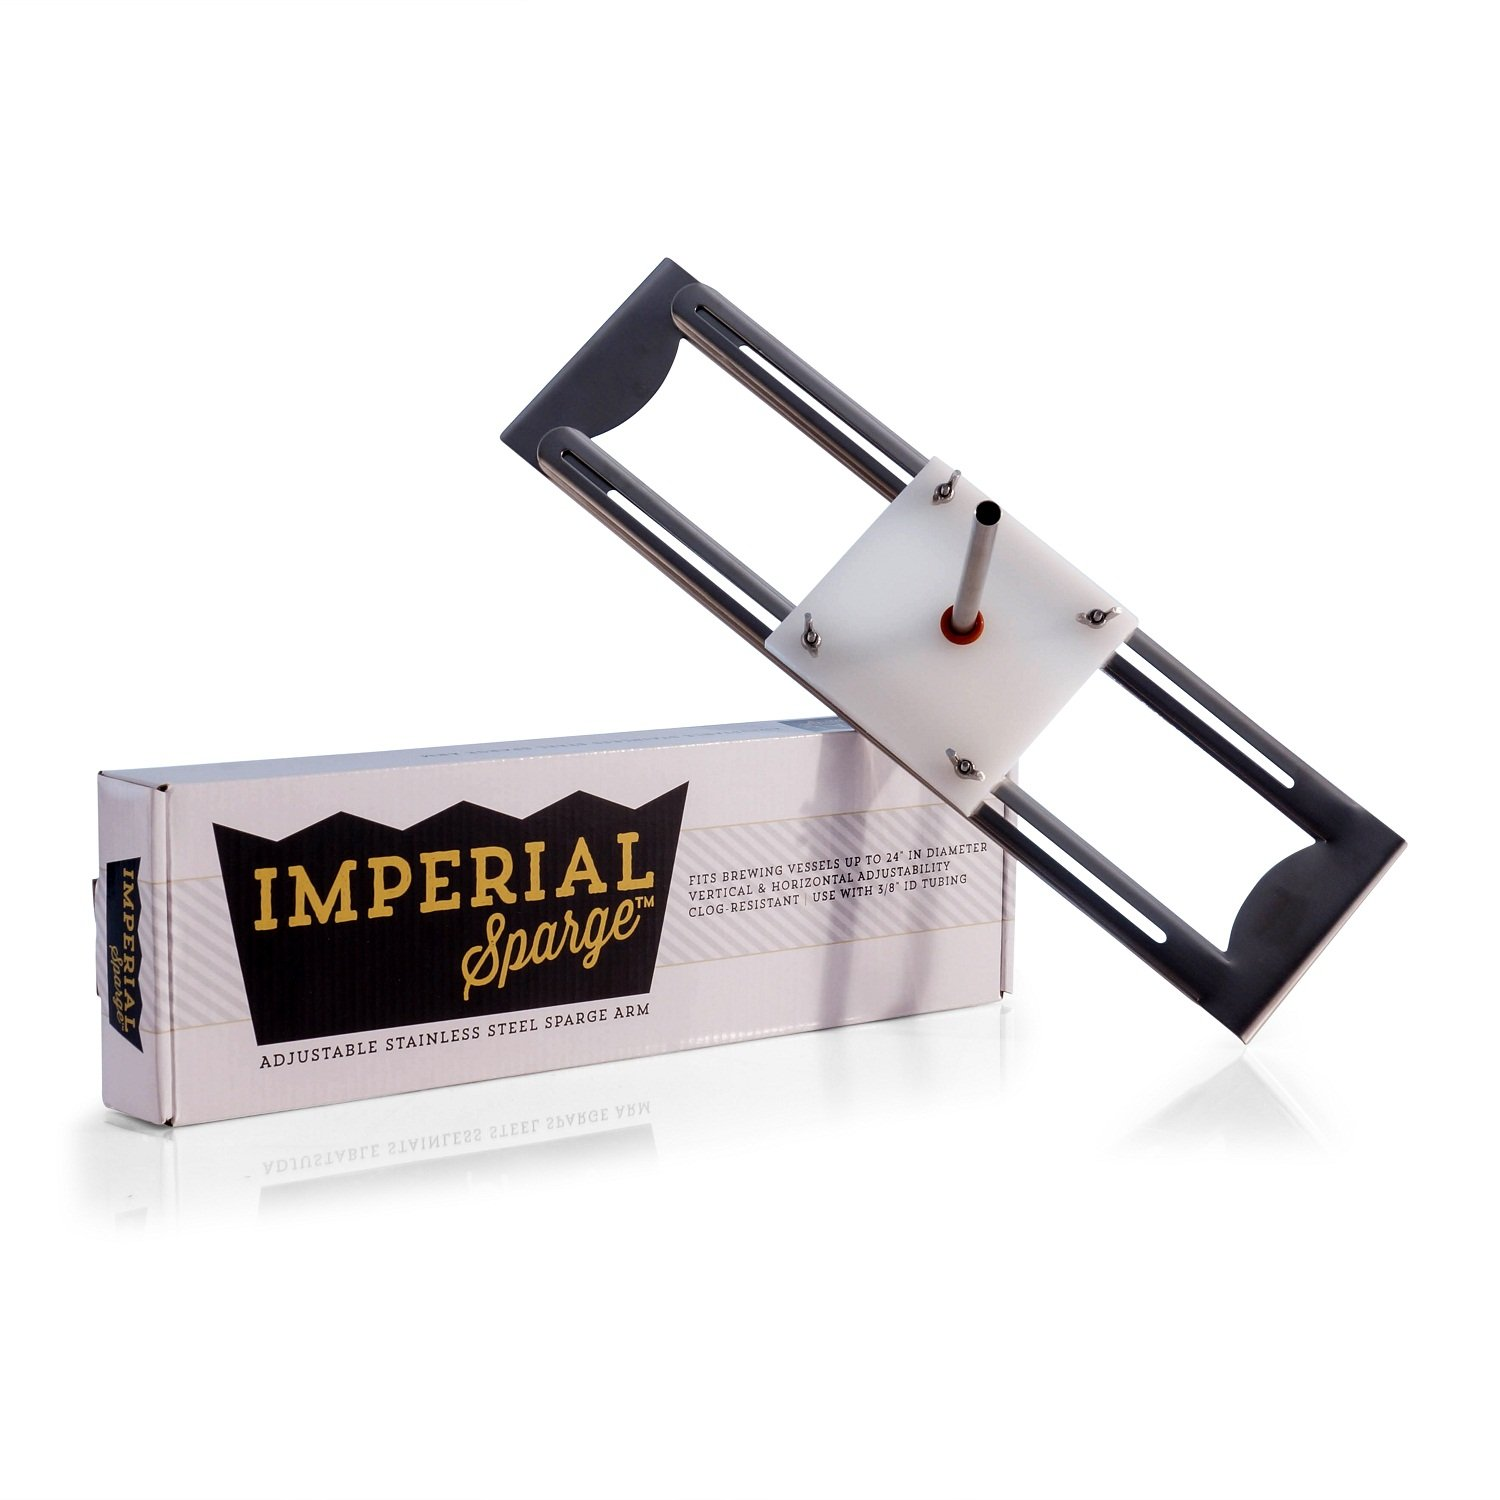 Imperial Sparge Stainless Steel Arm - Adjustable Width For All Grain Home Brewing On Any Mash Tun